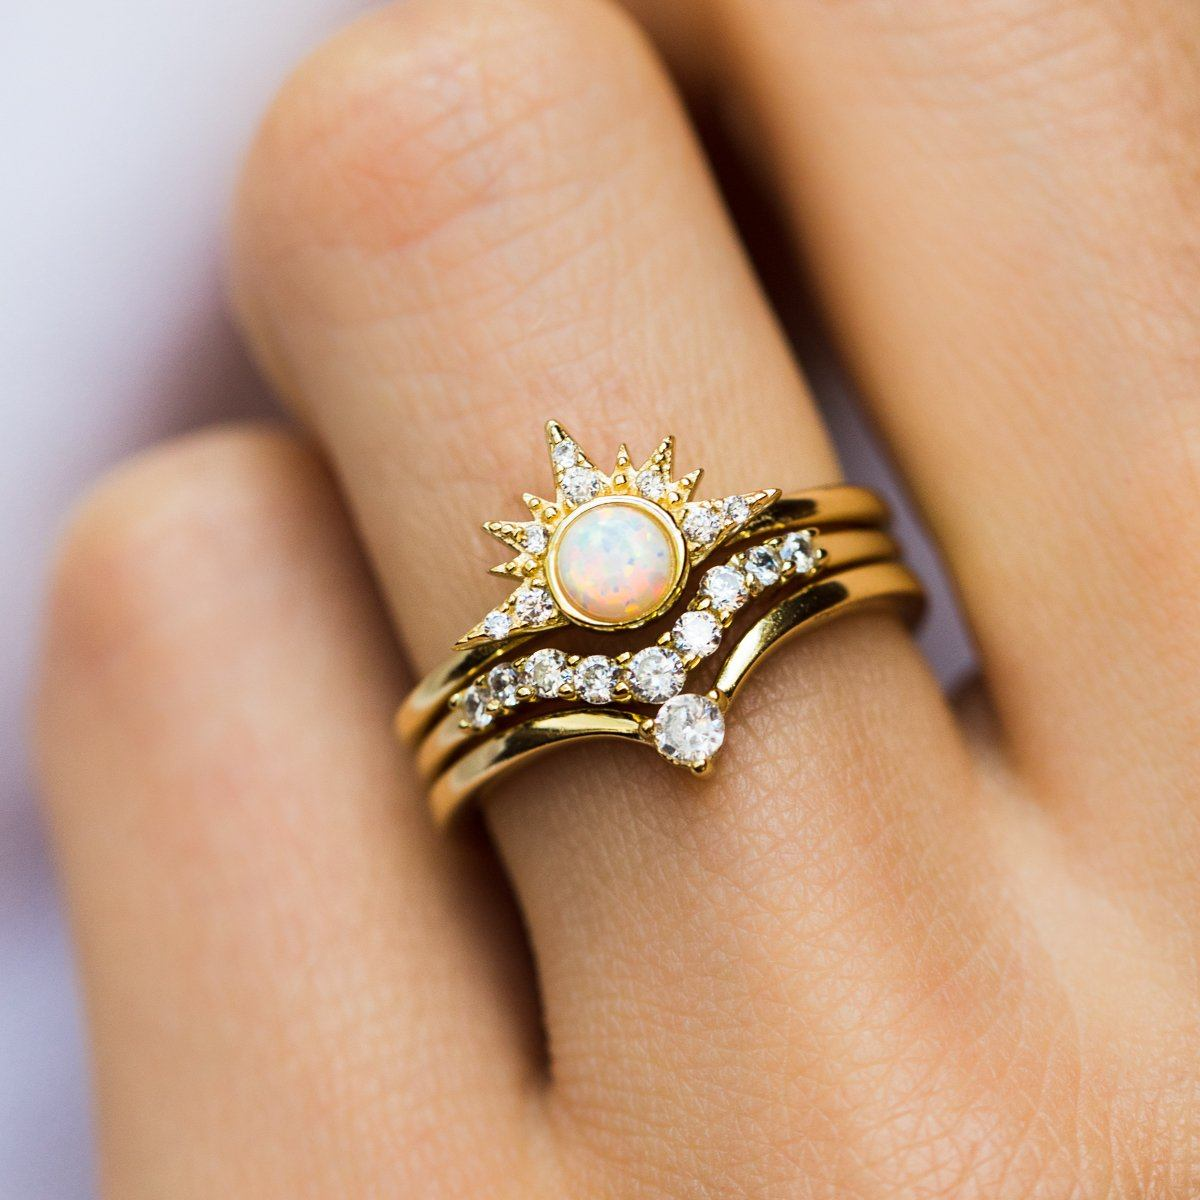 Starburst Stacking Ring Set In Gold With White Opal